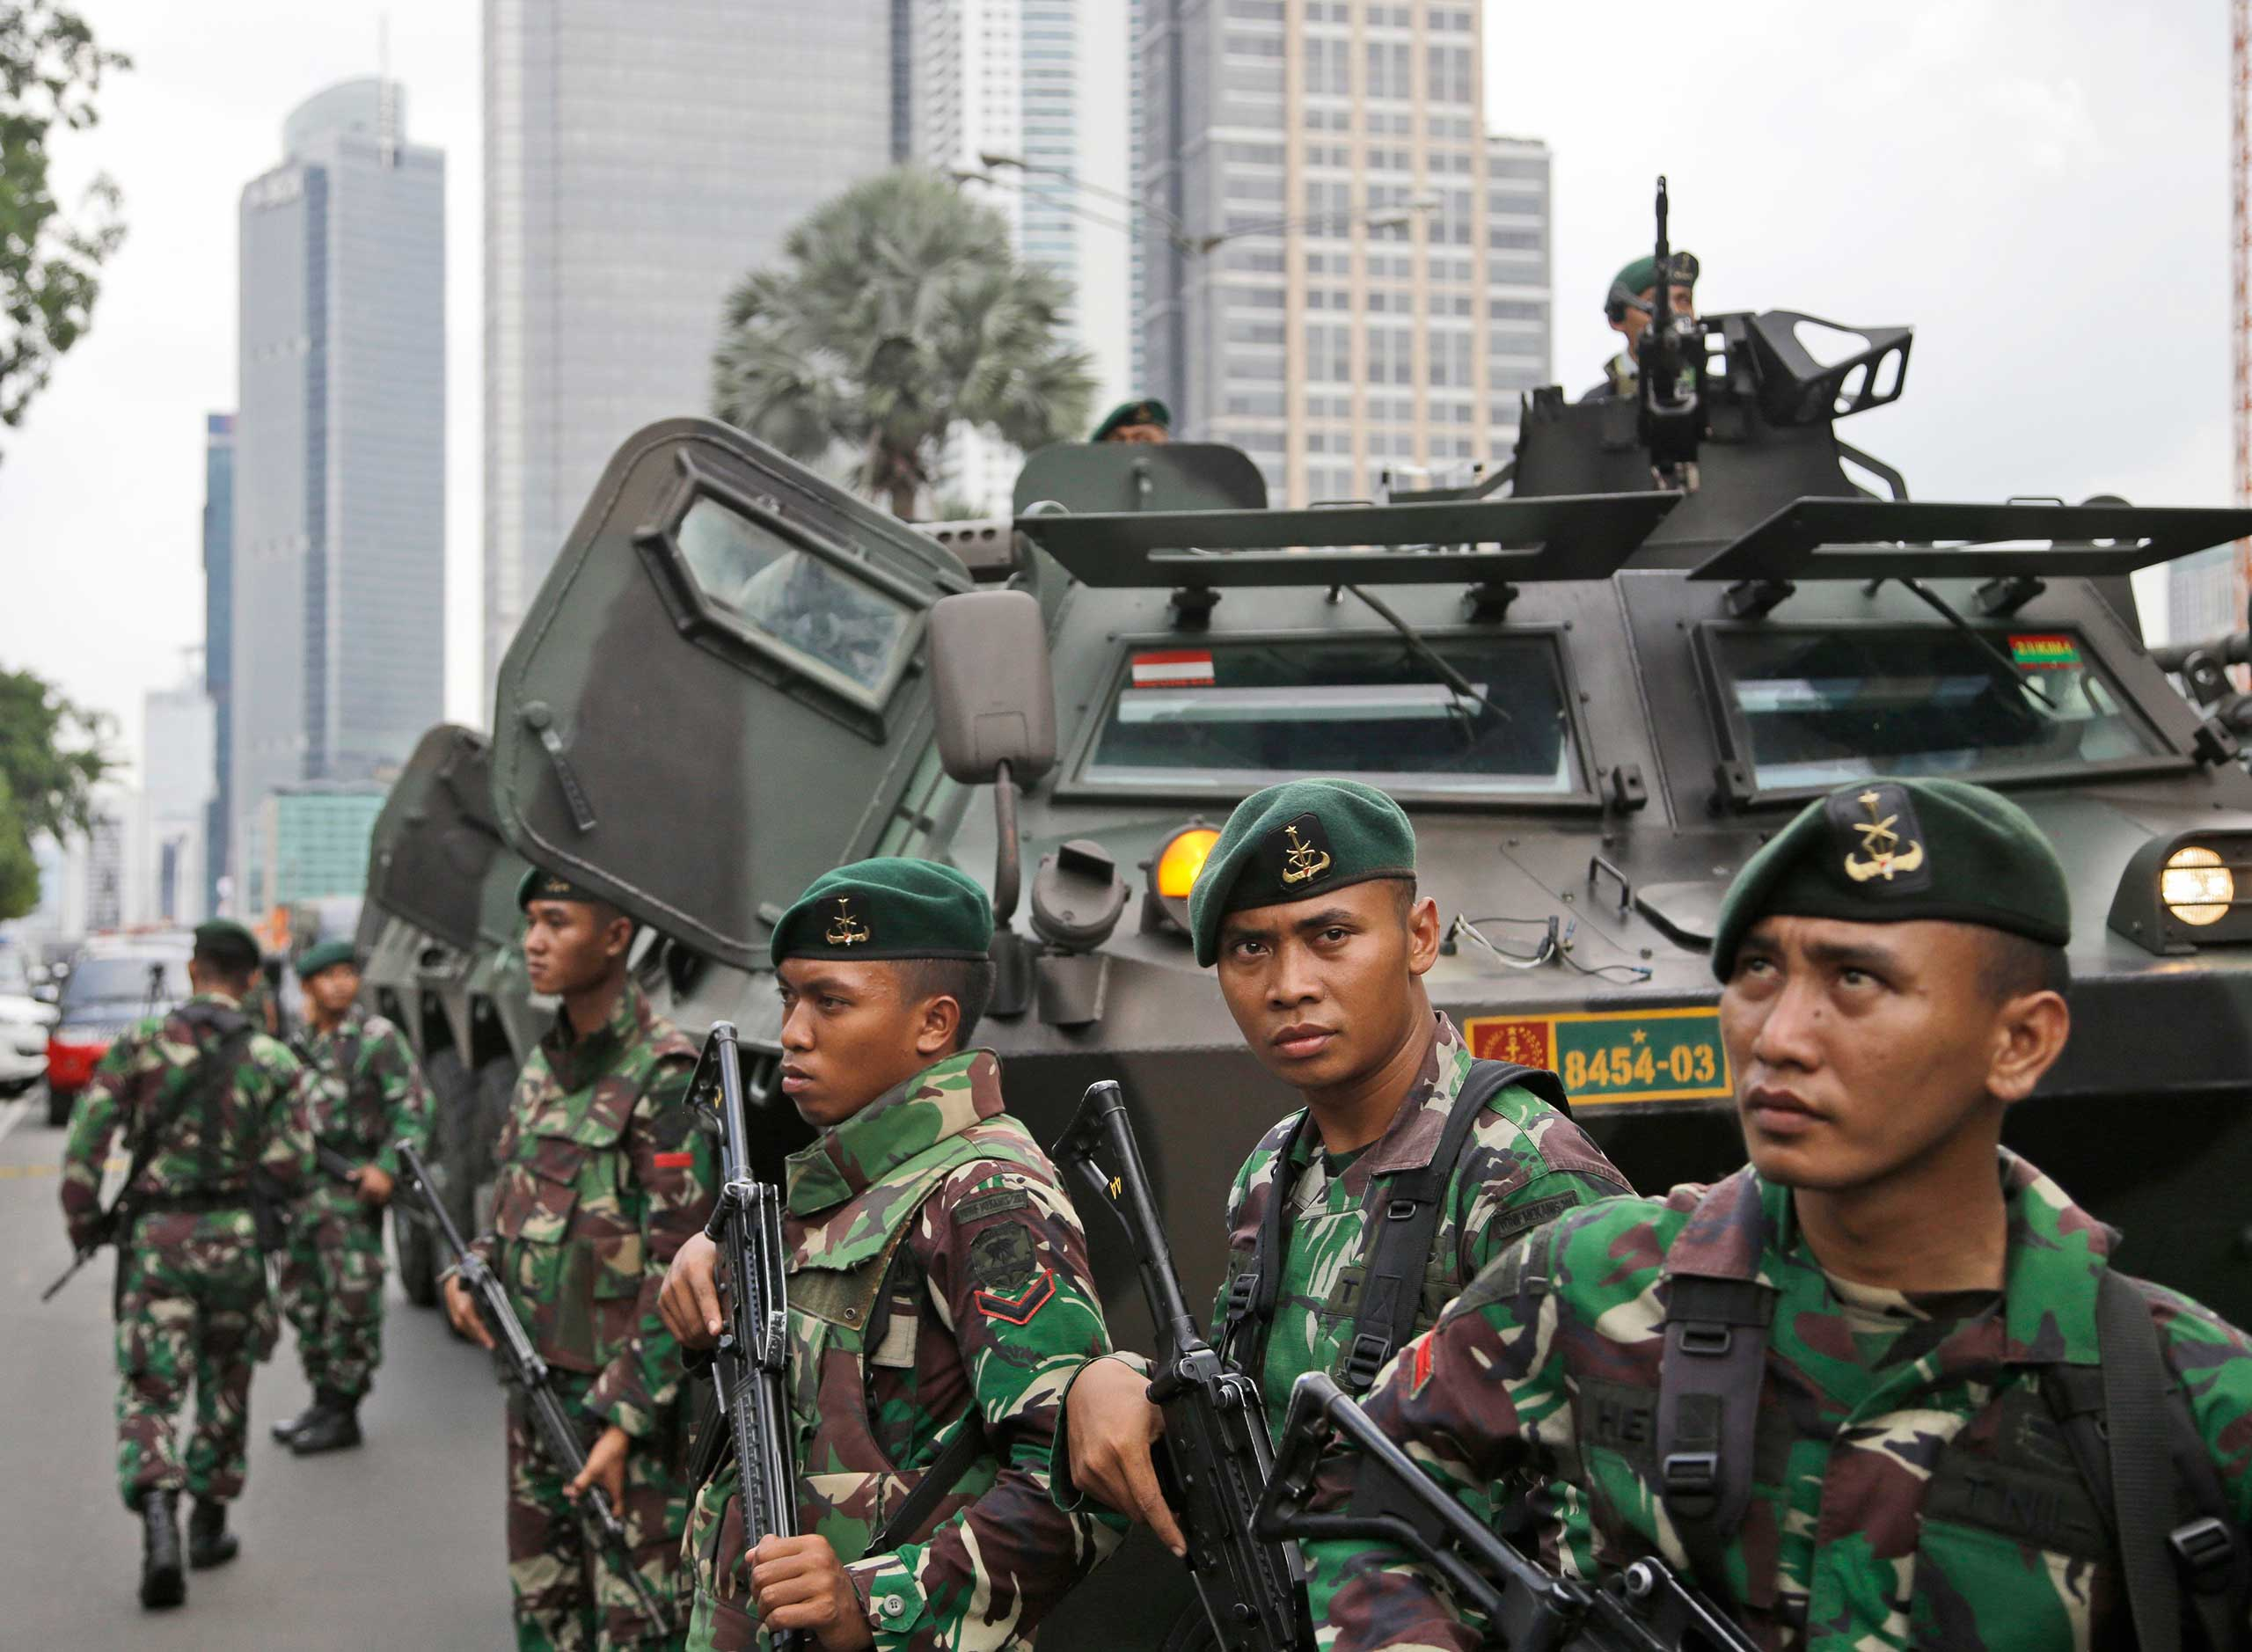 Soldiers stand guard near the site where an explosion went off in Jakarta, Indonesia, Jan. 14, 2016.